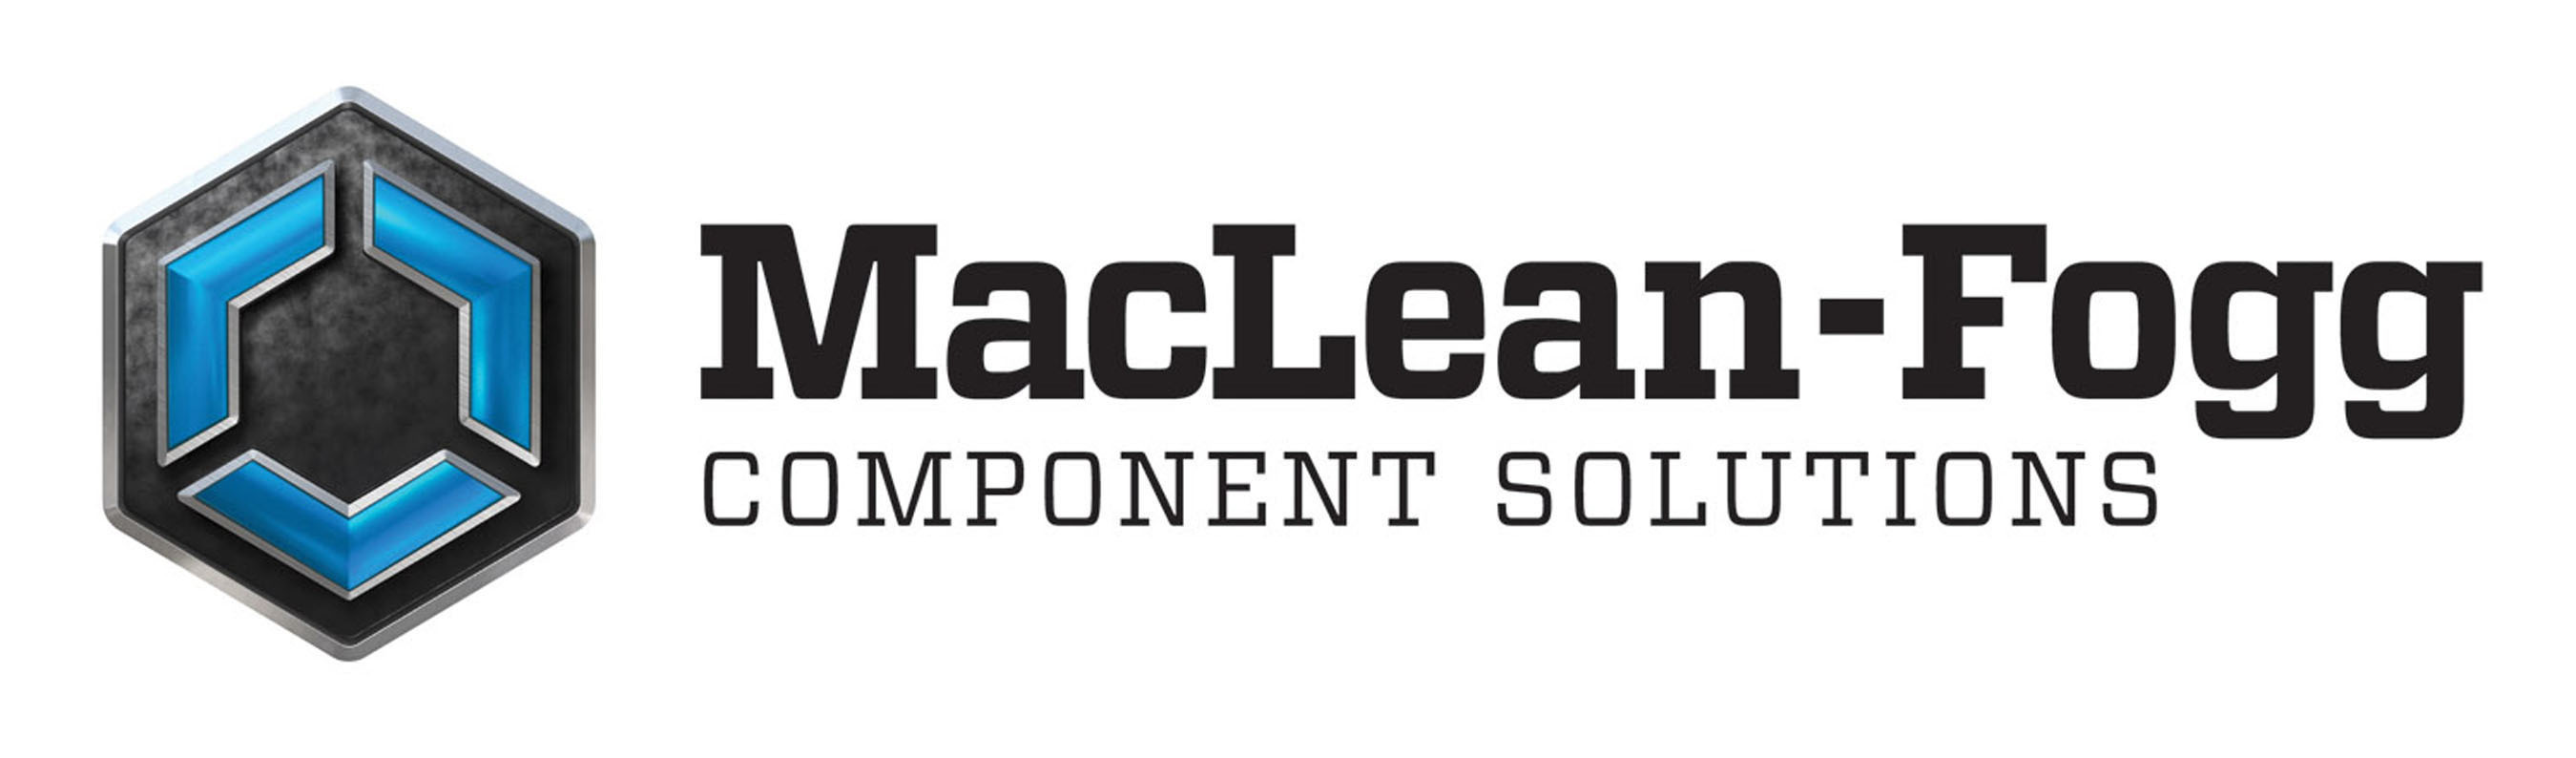 MacLean-Fogg Component Solutions supplies Fastener Components, Engineered Components and Linkage and Suspension  ...